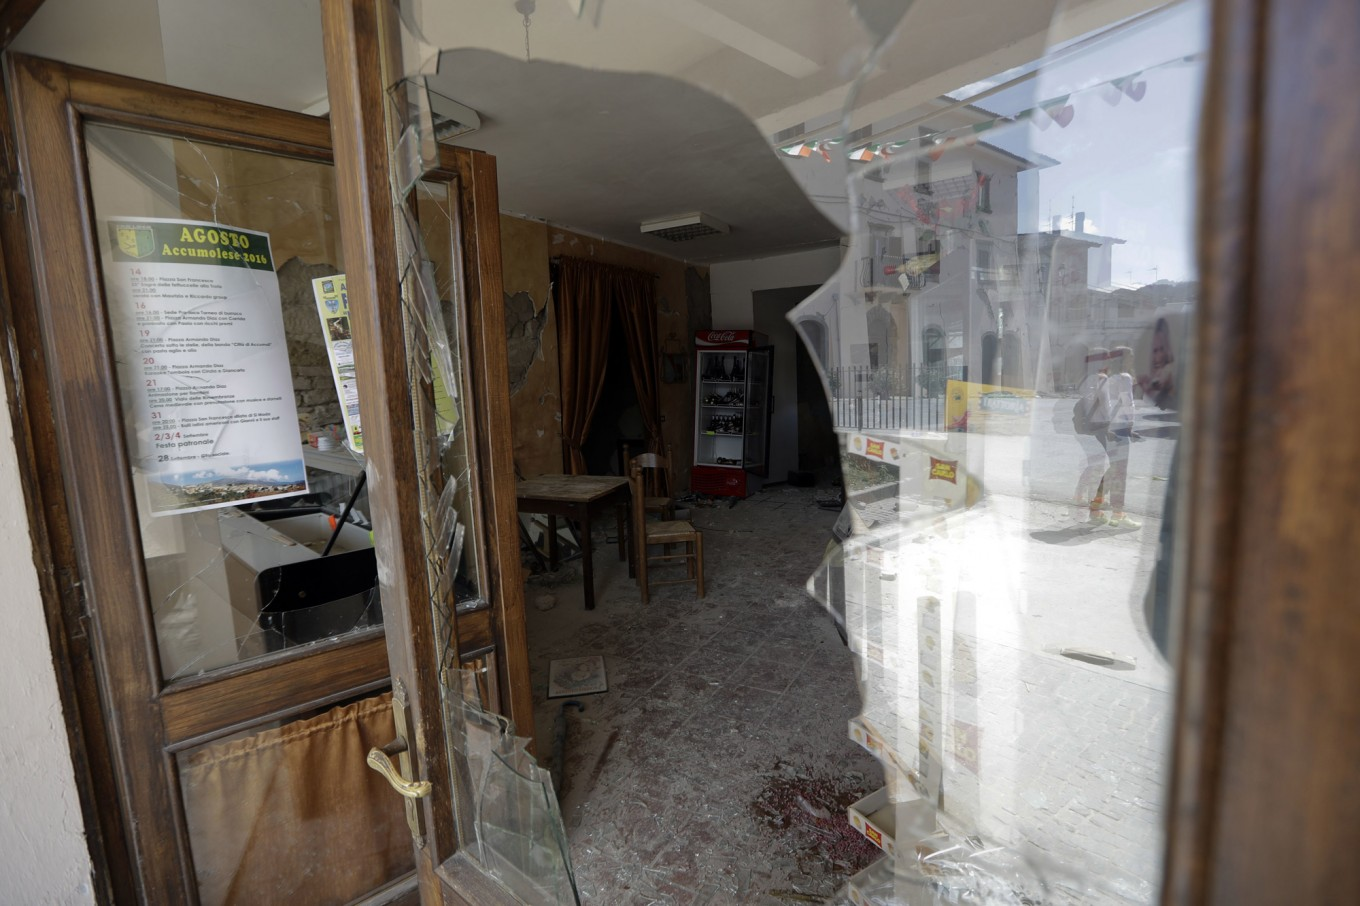 Damaged houses are reflected in the shattered window of a cafe, in Accumoli, central Italy, Wednesday, Aug. 24, 2016. The magnitude 6 quake struck at 3:36 a.m. [0136 GMT] and was felt across a broad swath of central Italy, including Rome where  residents of the capital felt a long swaying followed by aftershocks. AP Photo/Andrew Medichini